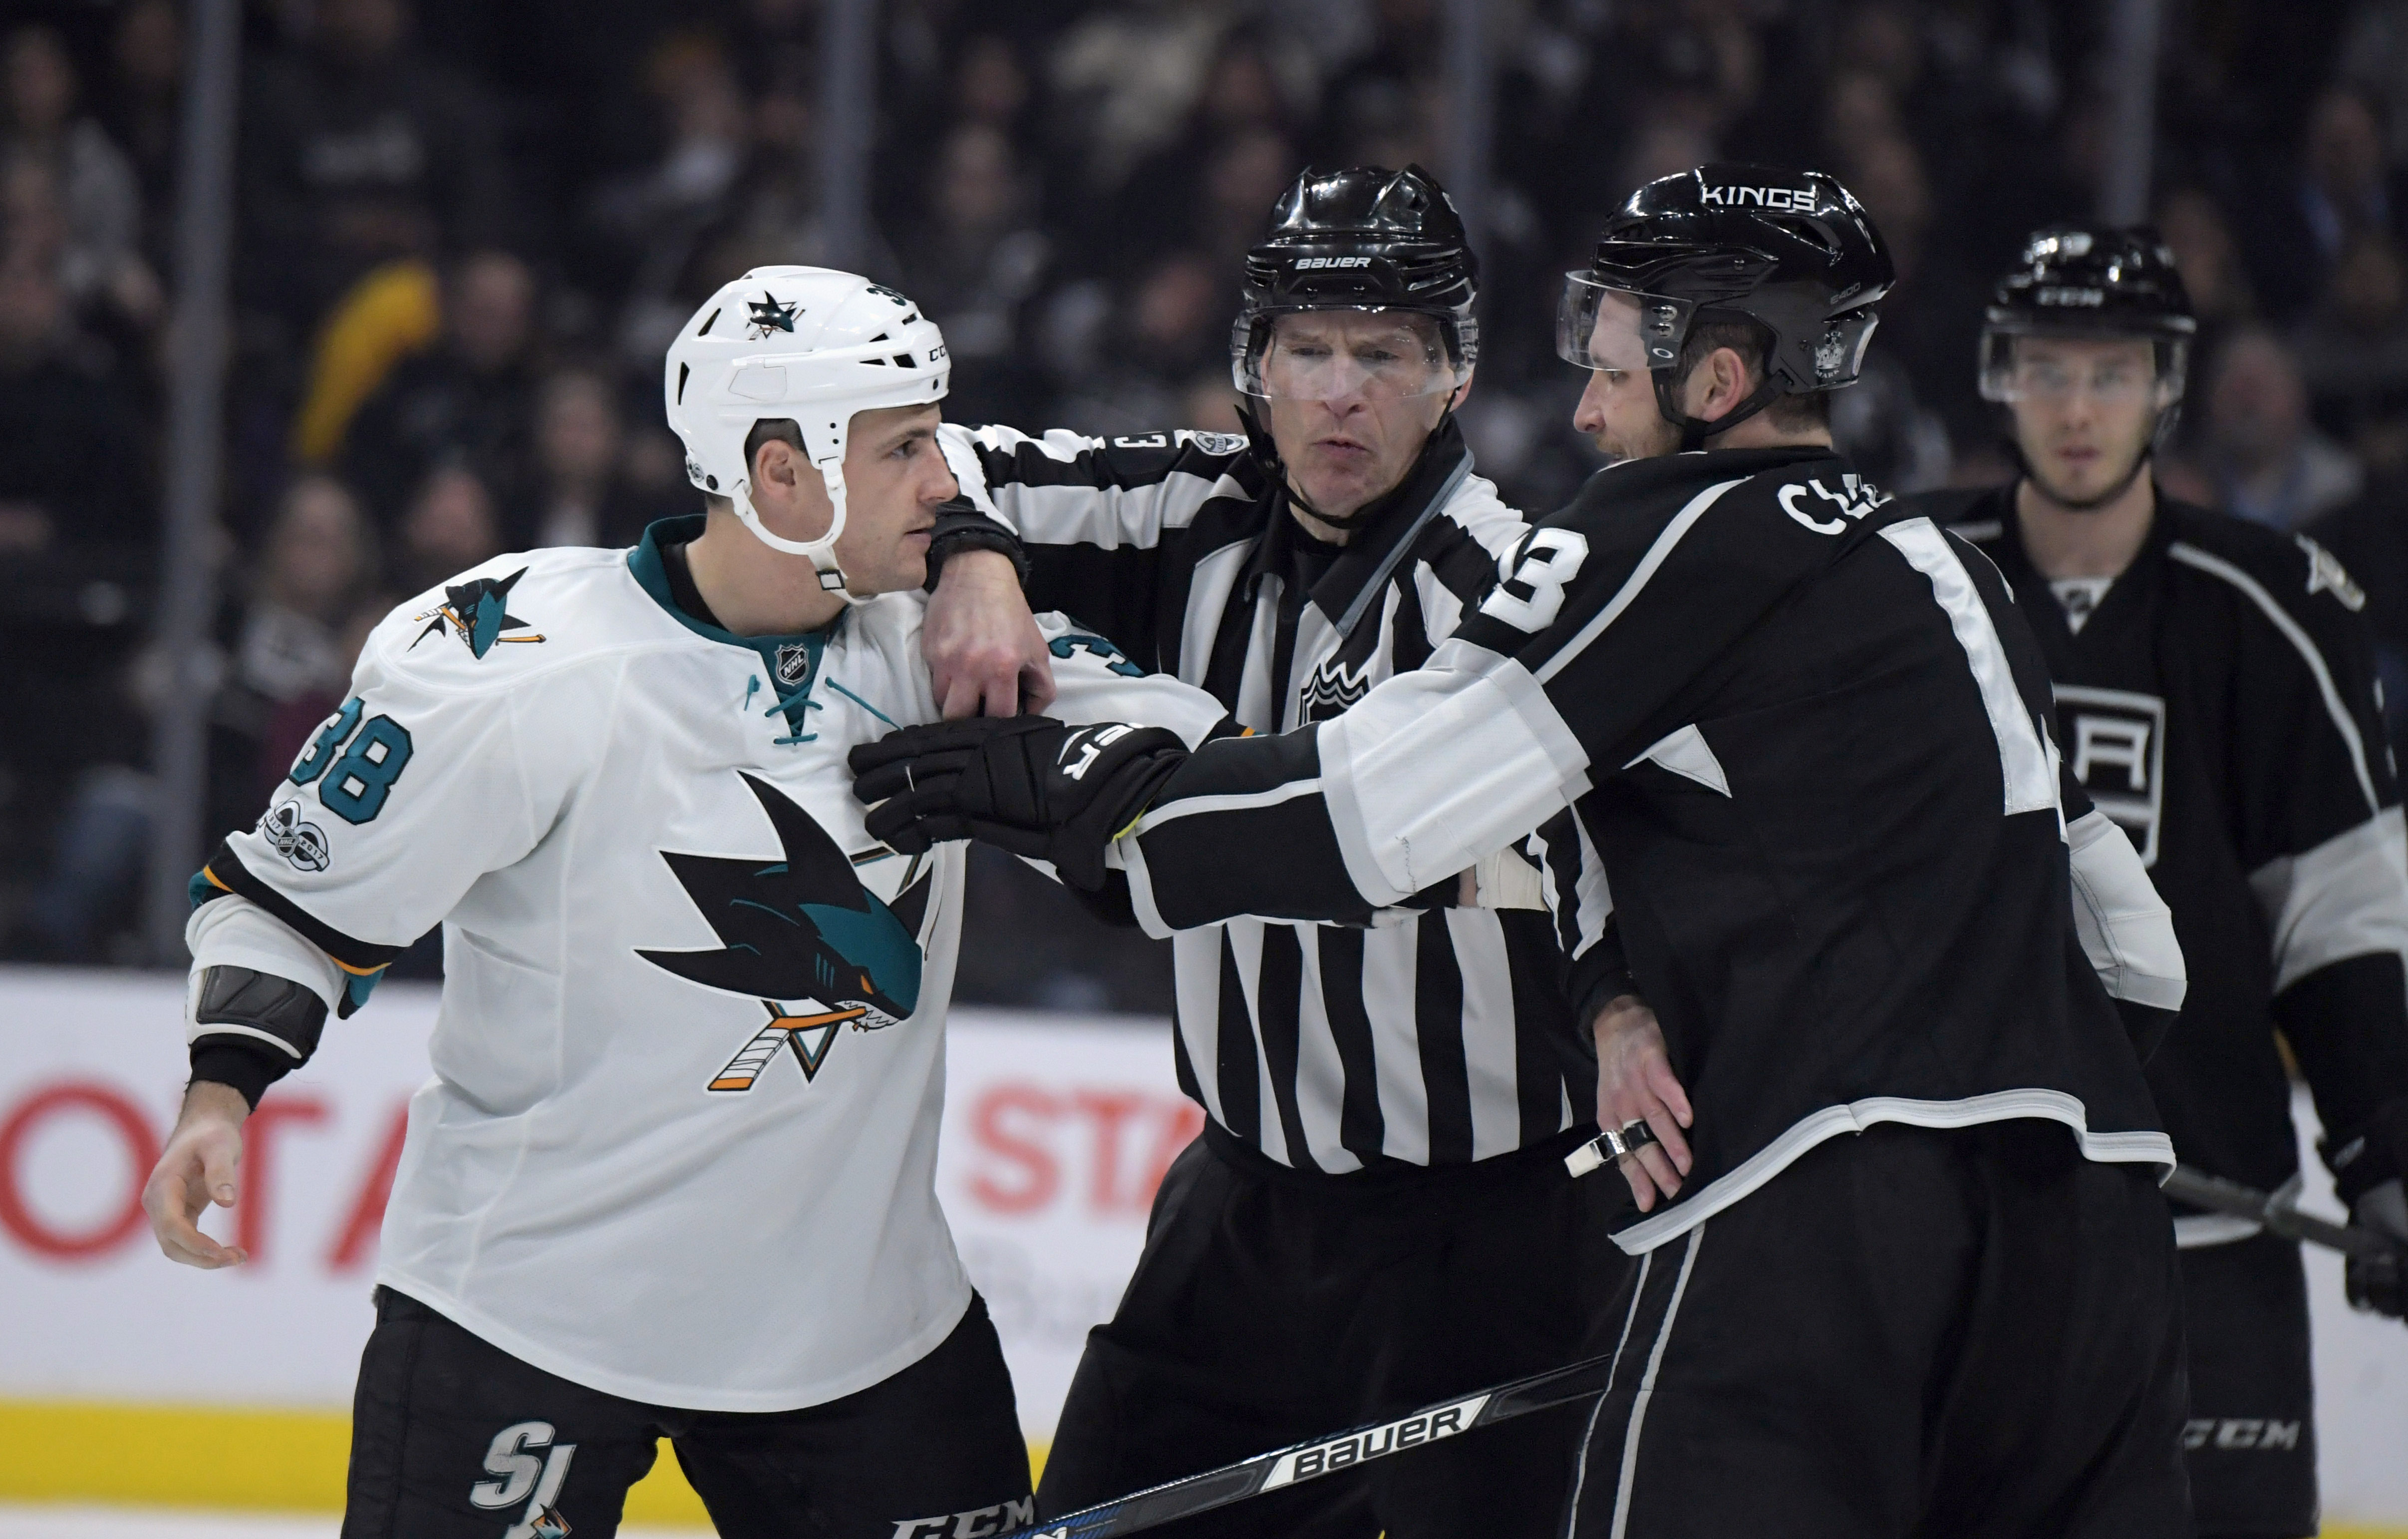 Jan 18, 2017; Los Angeles, CA, USA; San Jose Sharks center Micheal Haley (38) and Los Angeles Kings left wing Kyle Clifford (13) fight in the second period during a NHL hockey game at Staples Center.